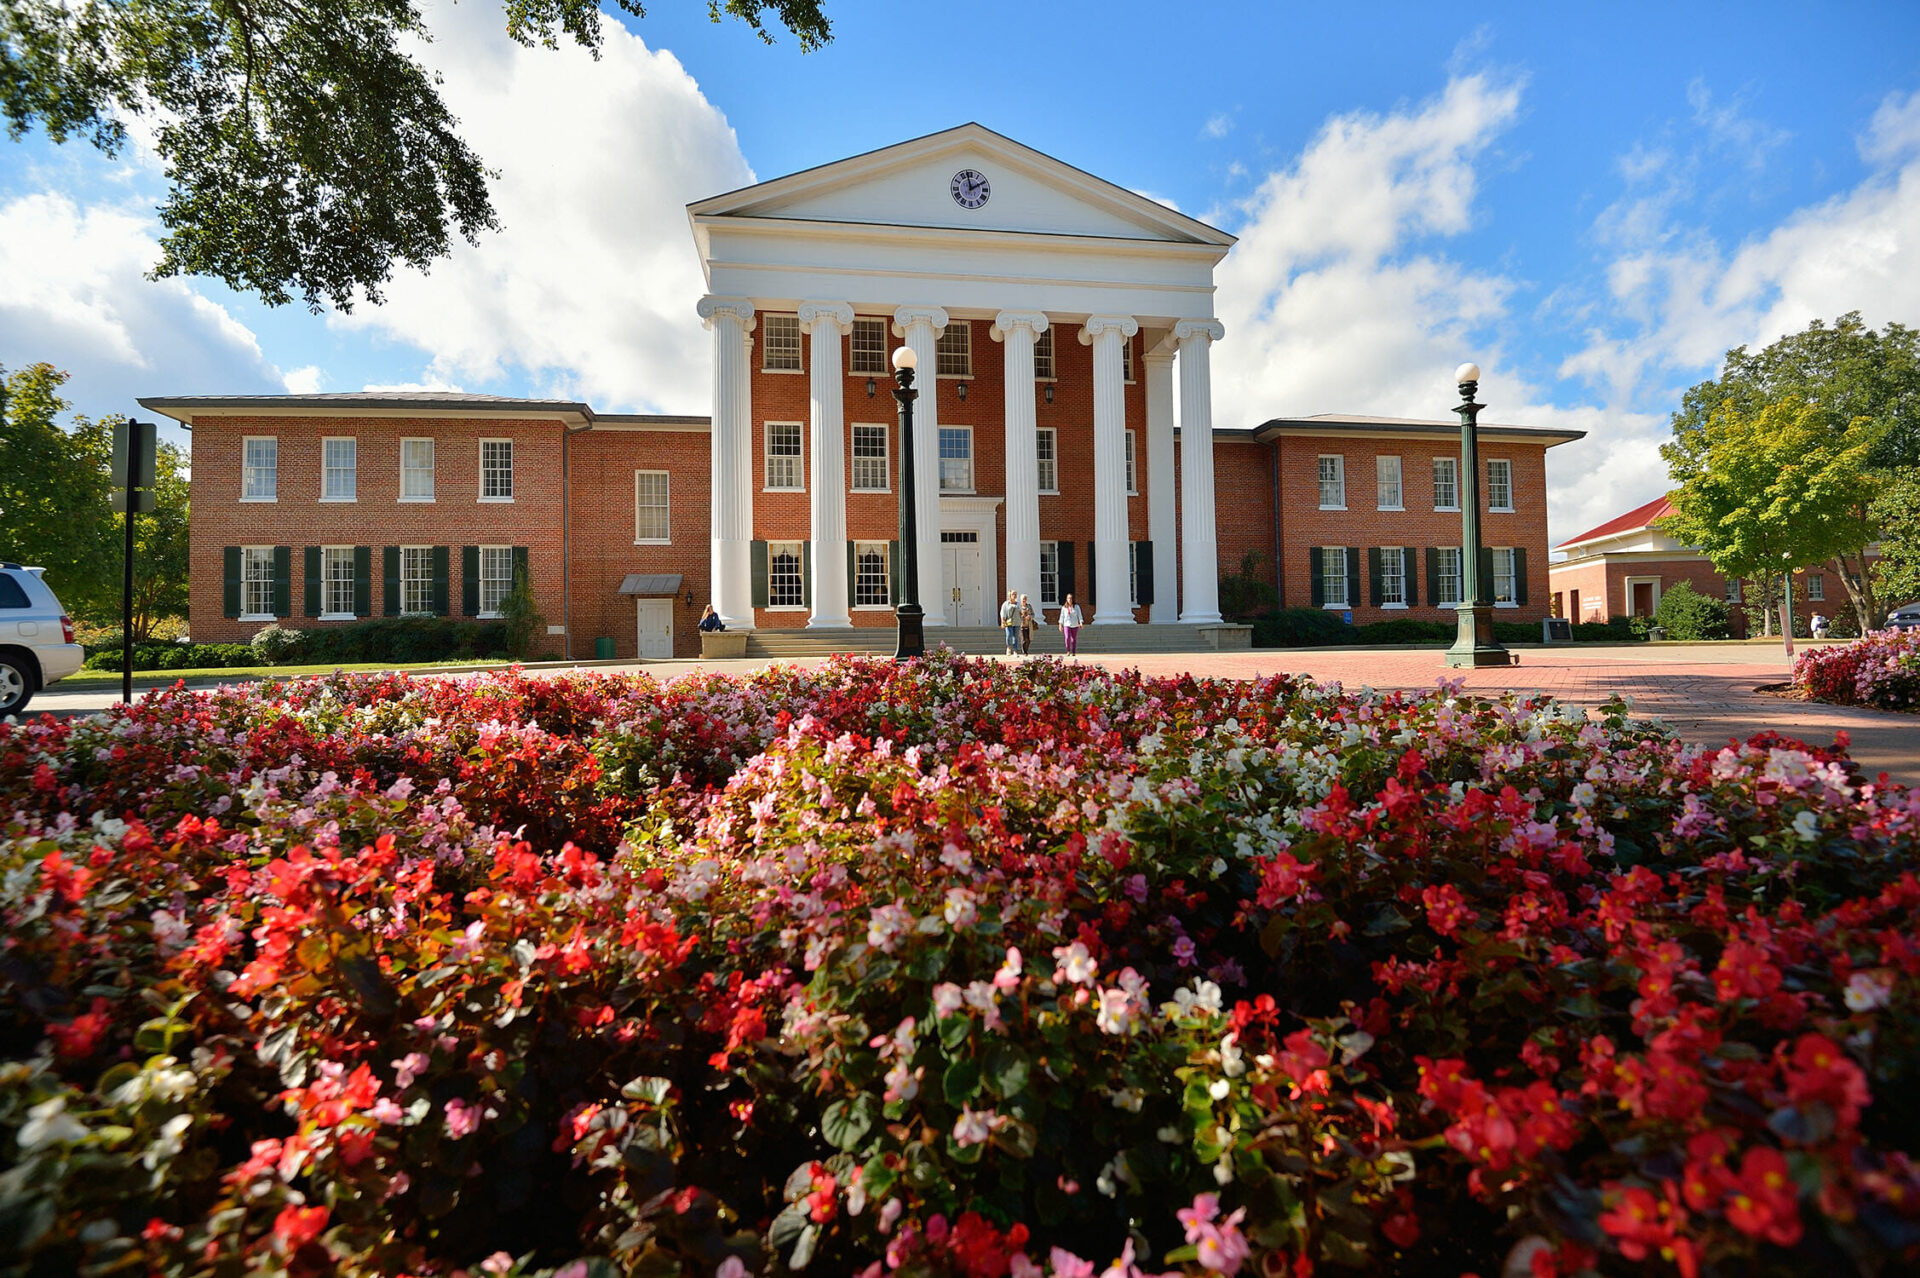 Vote Now: Ole Miss in Running for Most Beautiful US College Campus - HottyToddy.com